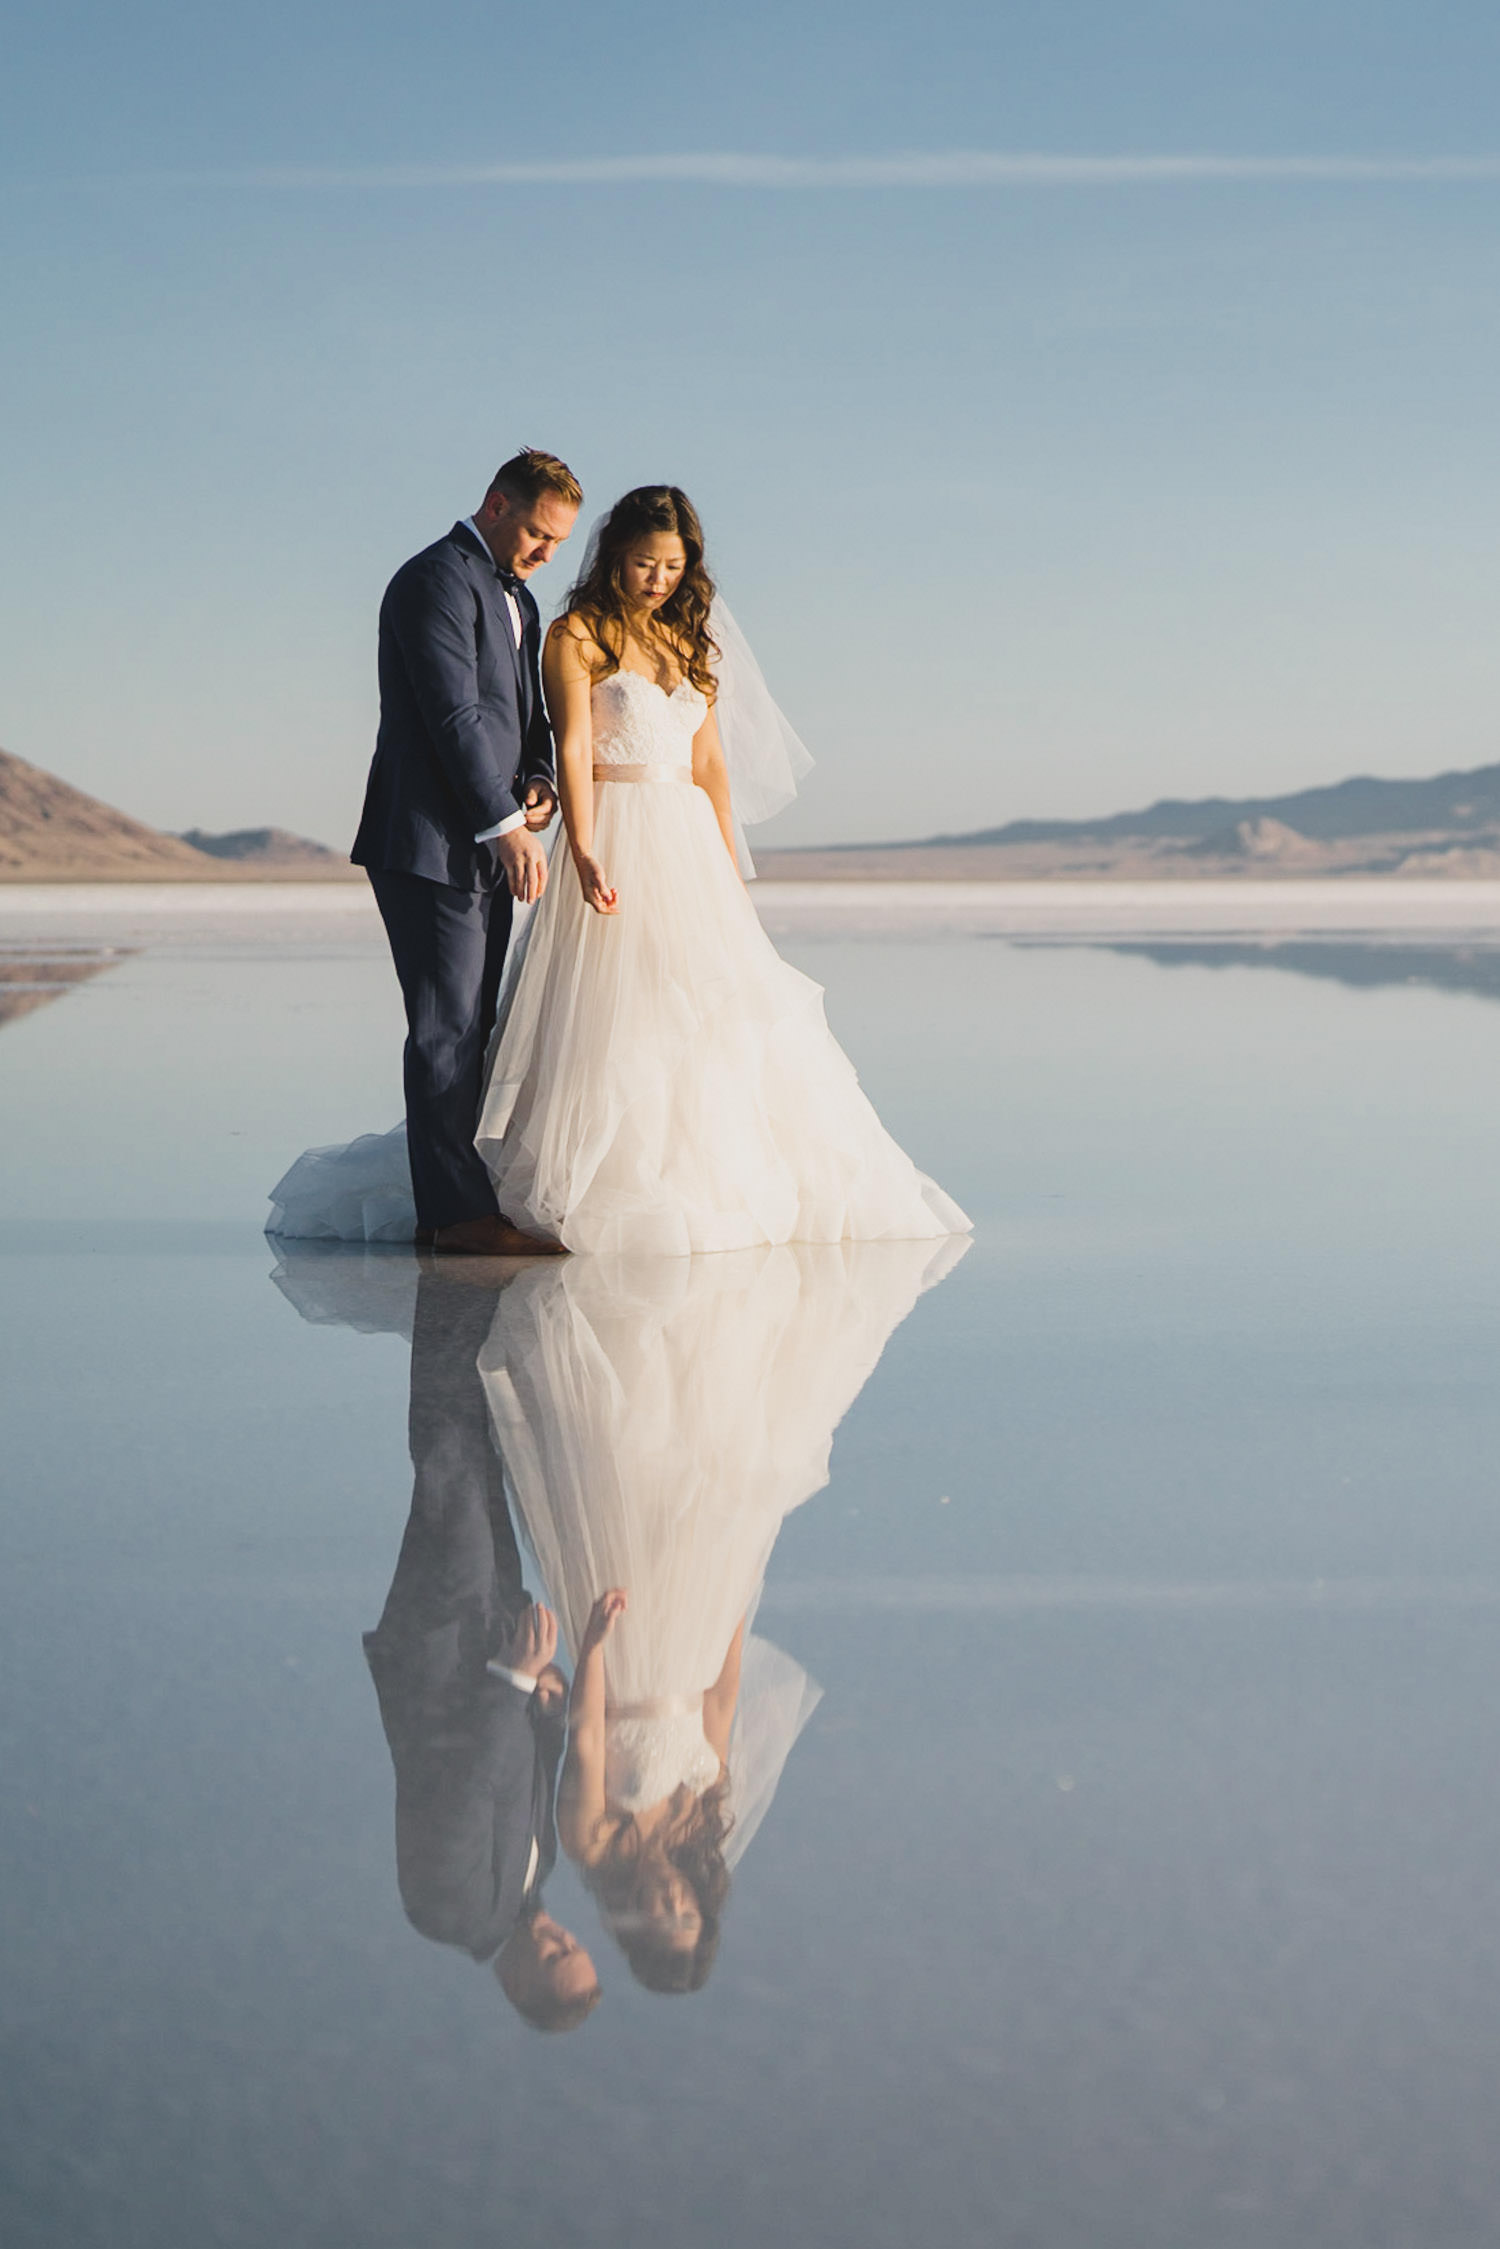 Bonneville Salt Flats wedding bride and groom portrait reflection photo